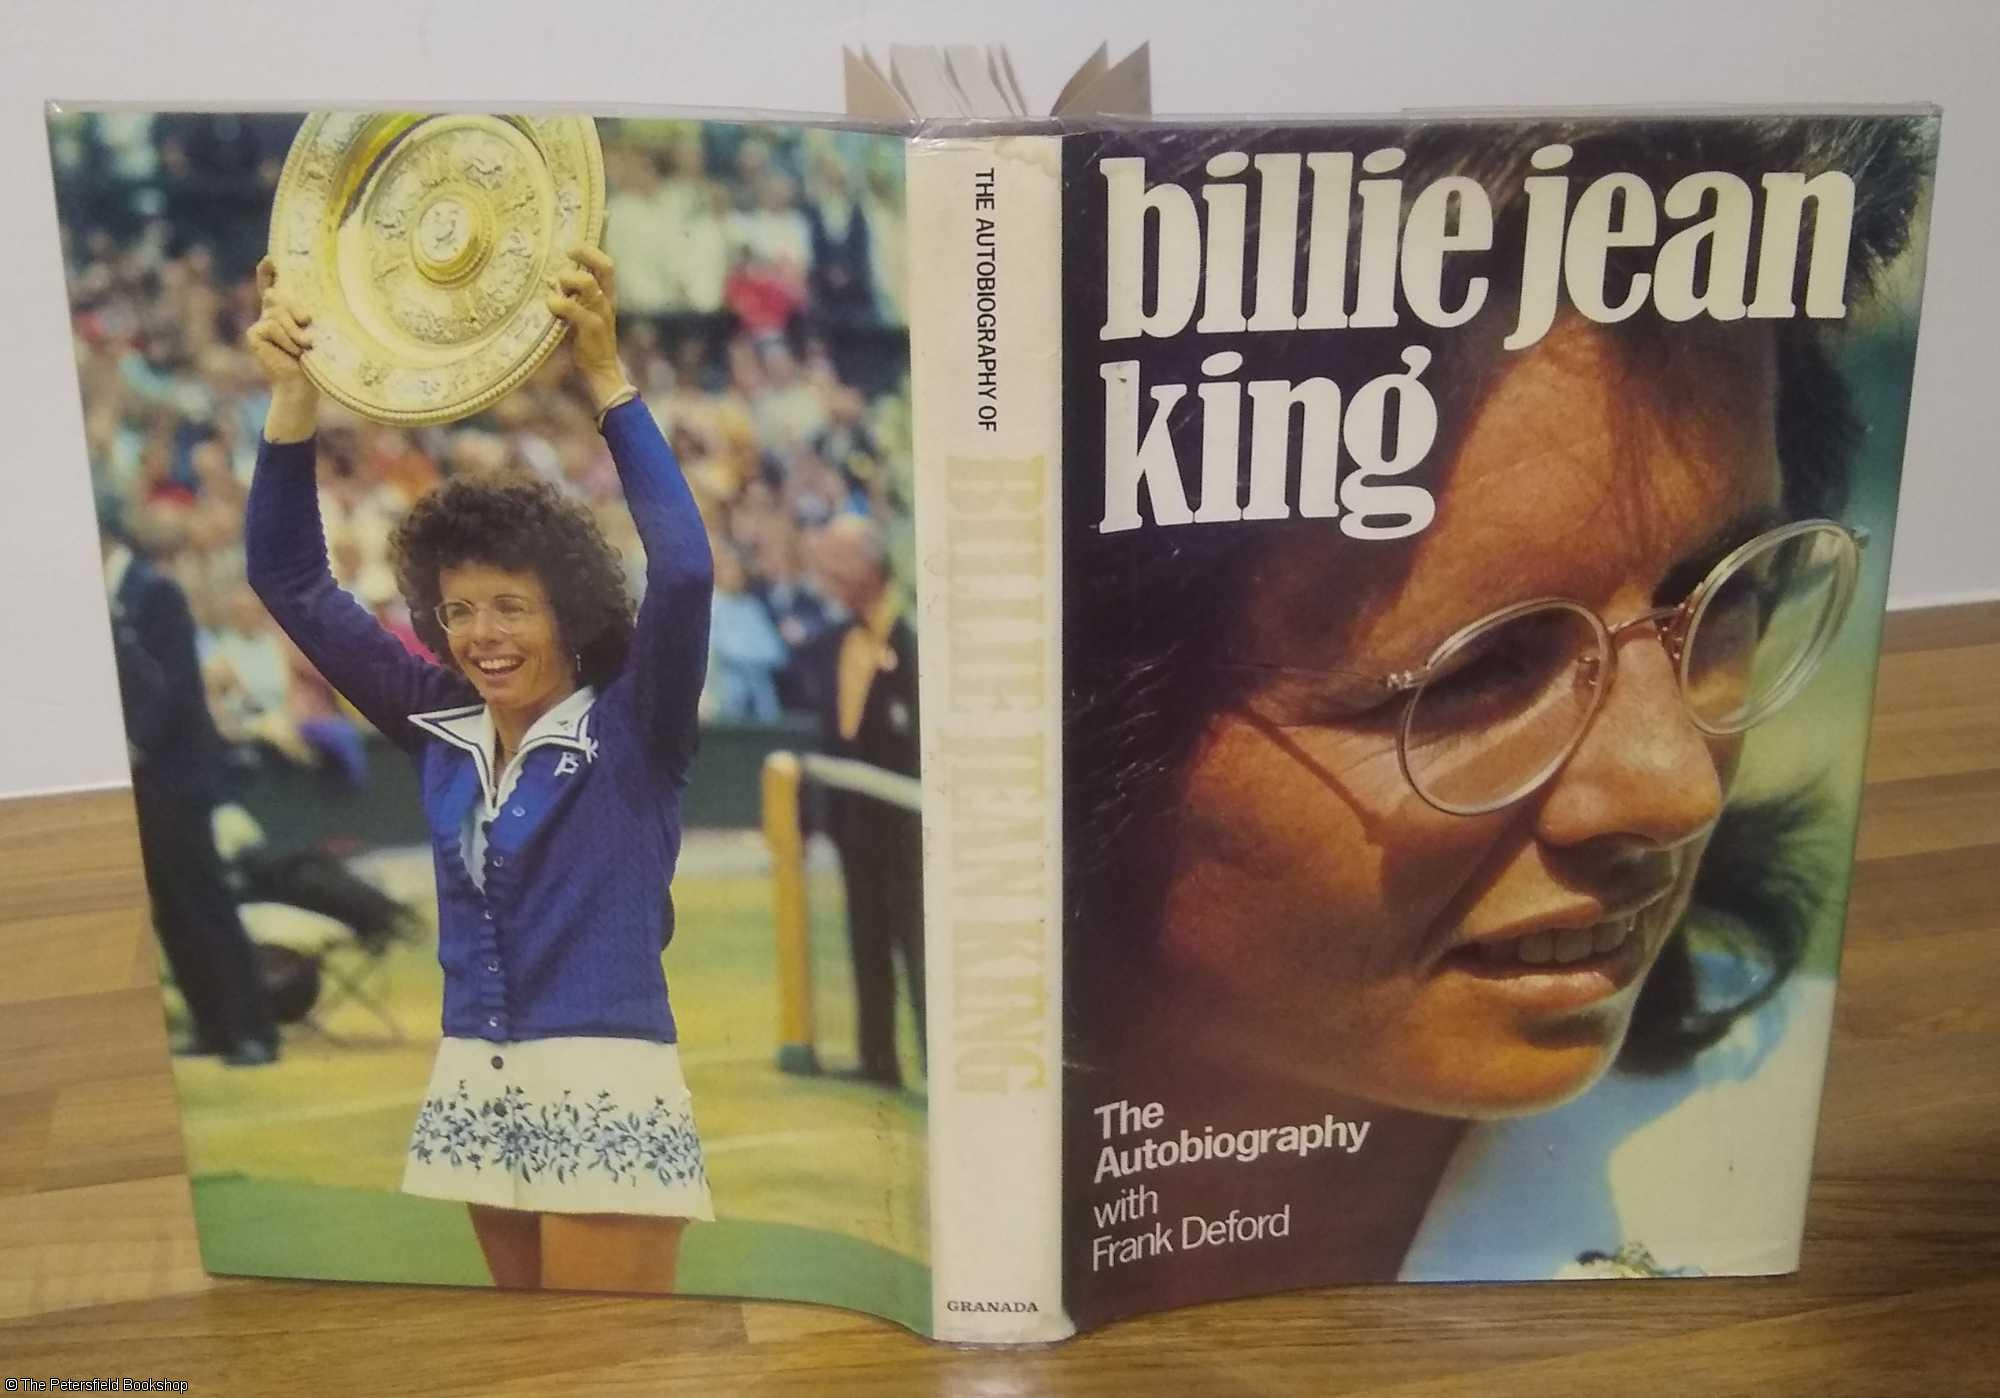 The Autobiography of Billie Jean King (with autographed card) - King (Billie Jean) with Frank Deford